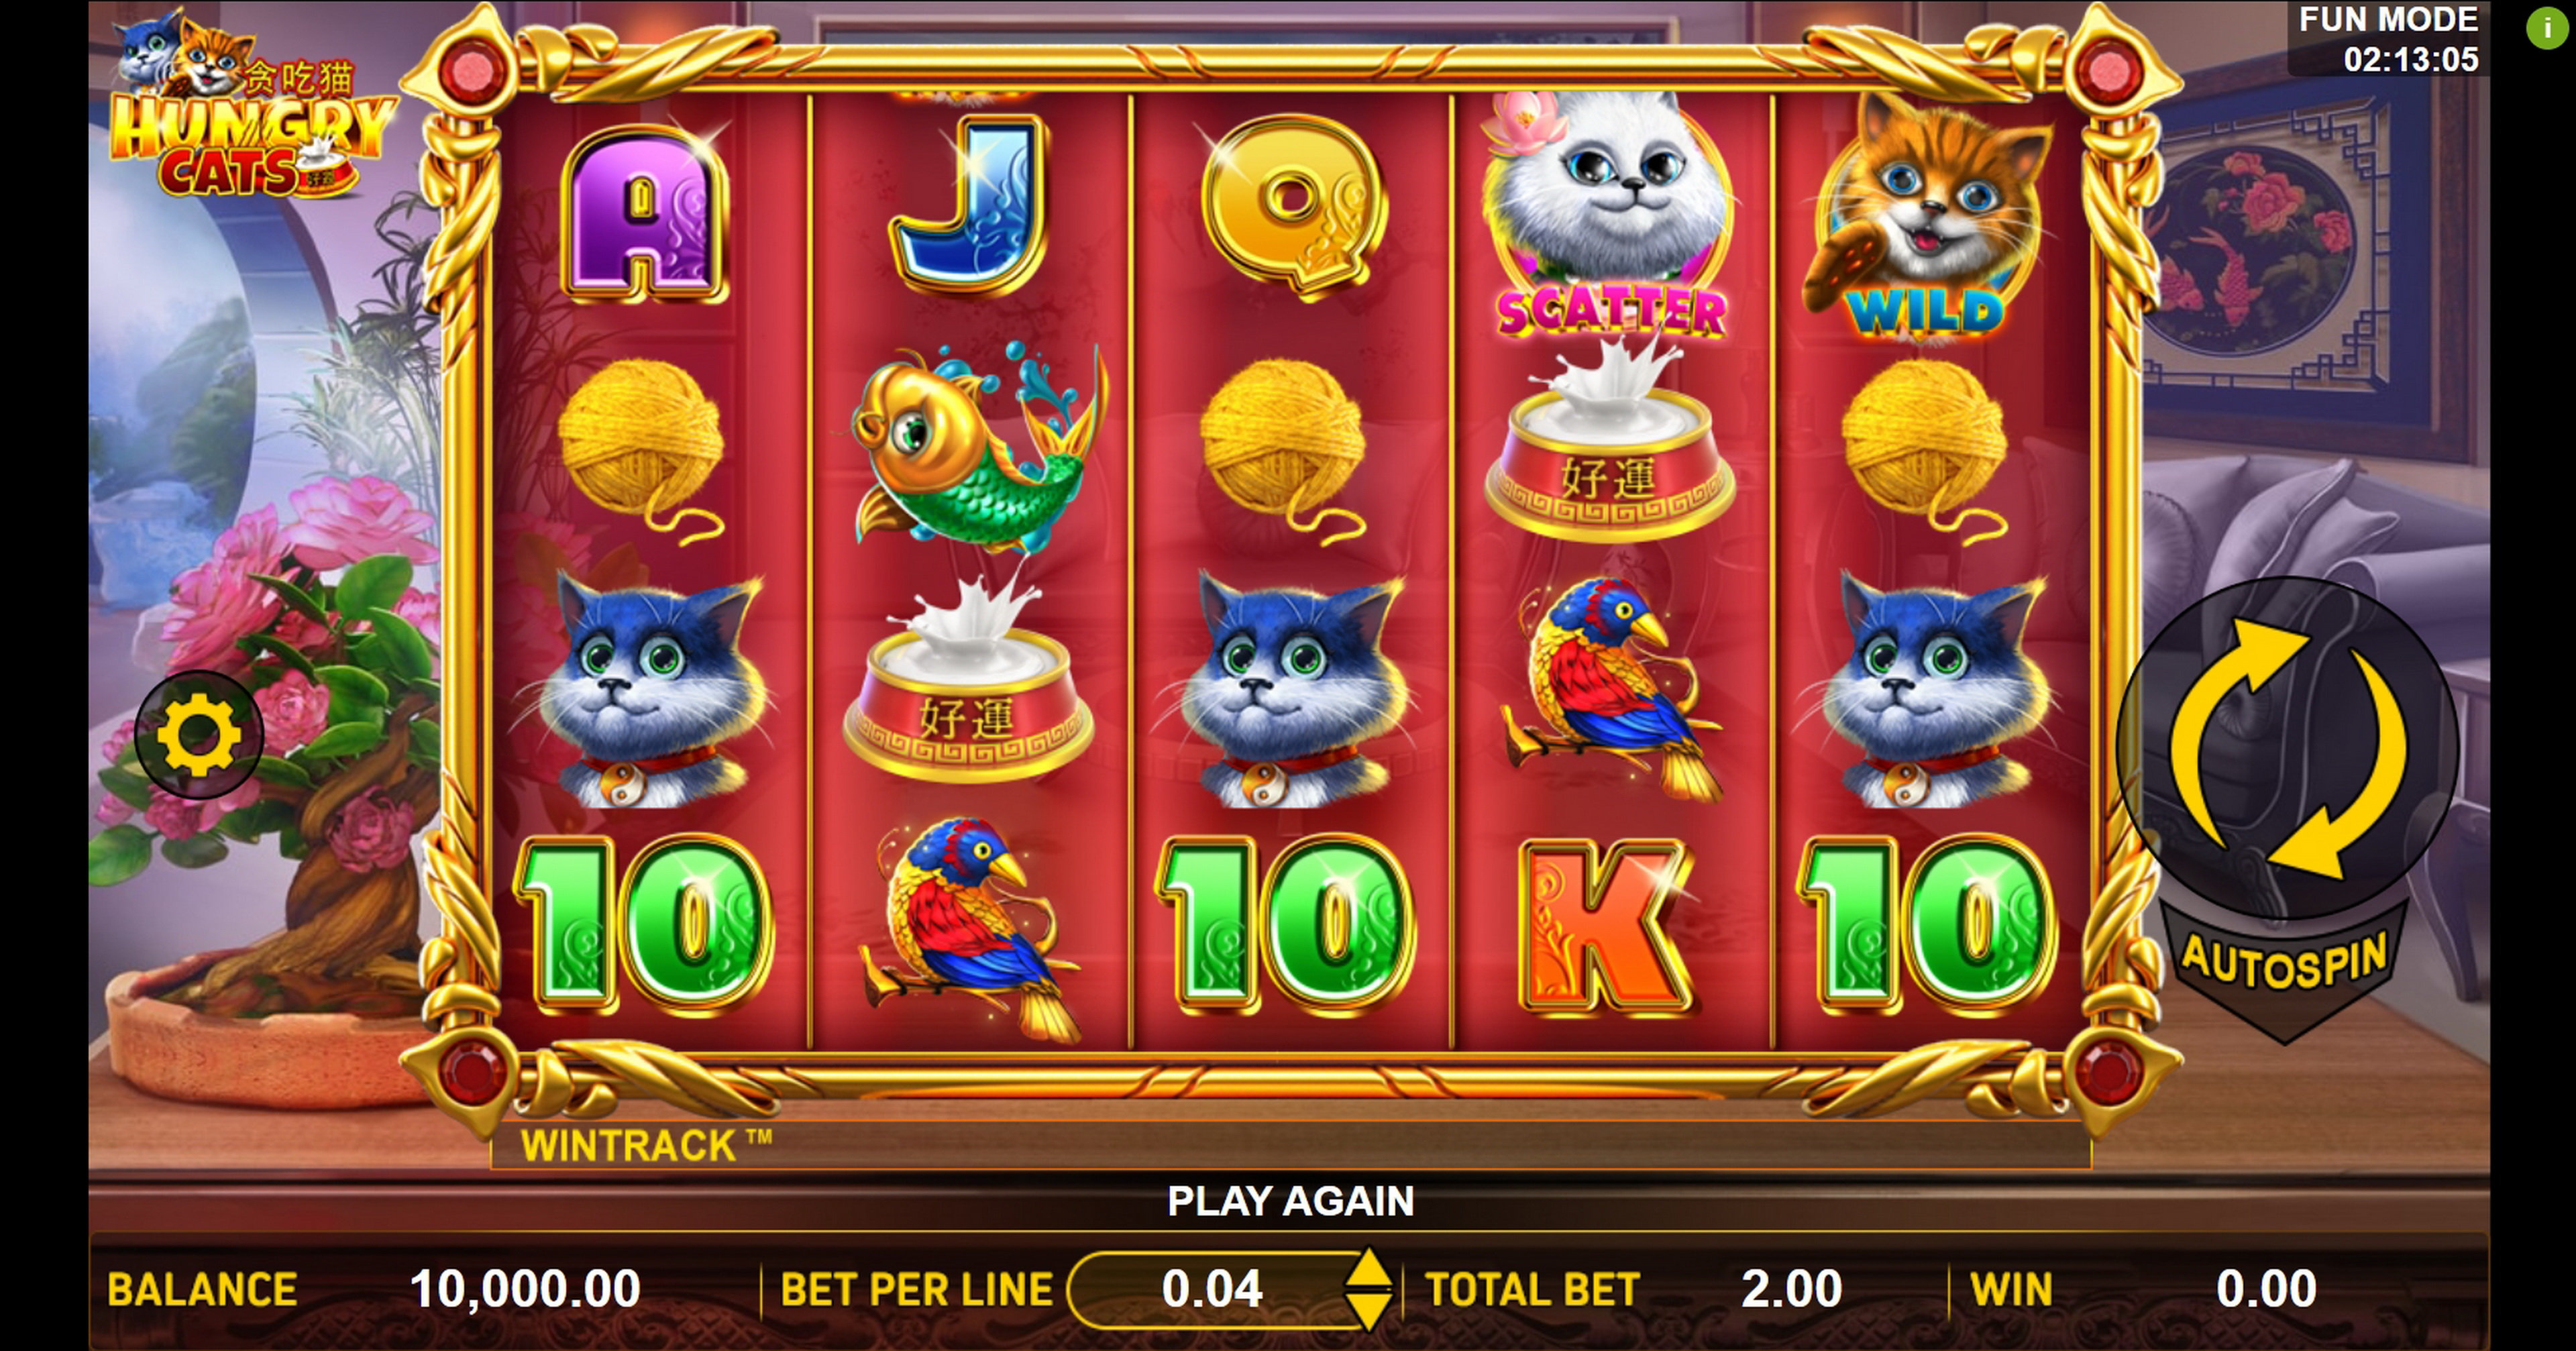 Reels in Hungry Cats Slot Game by Aspect Gaming